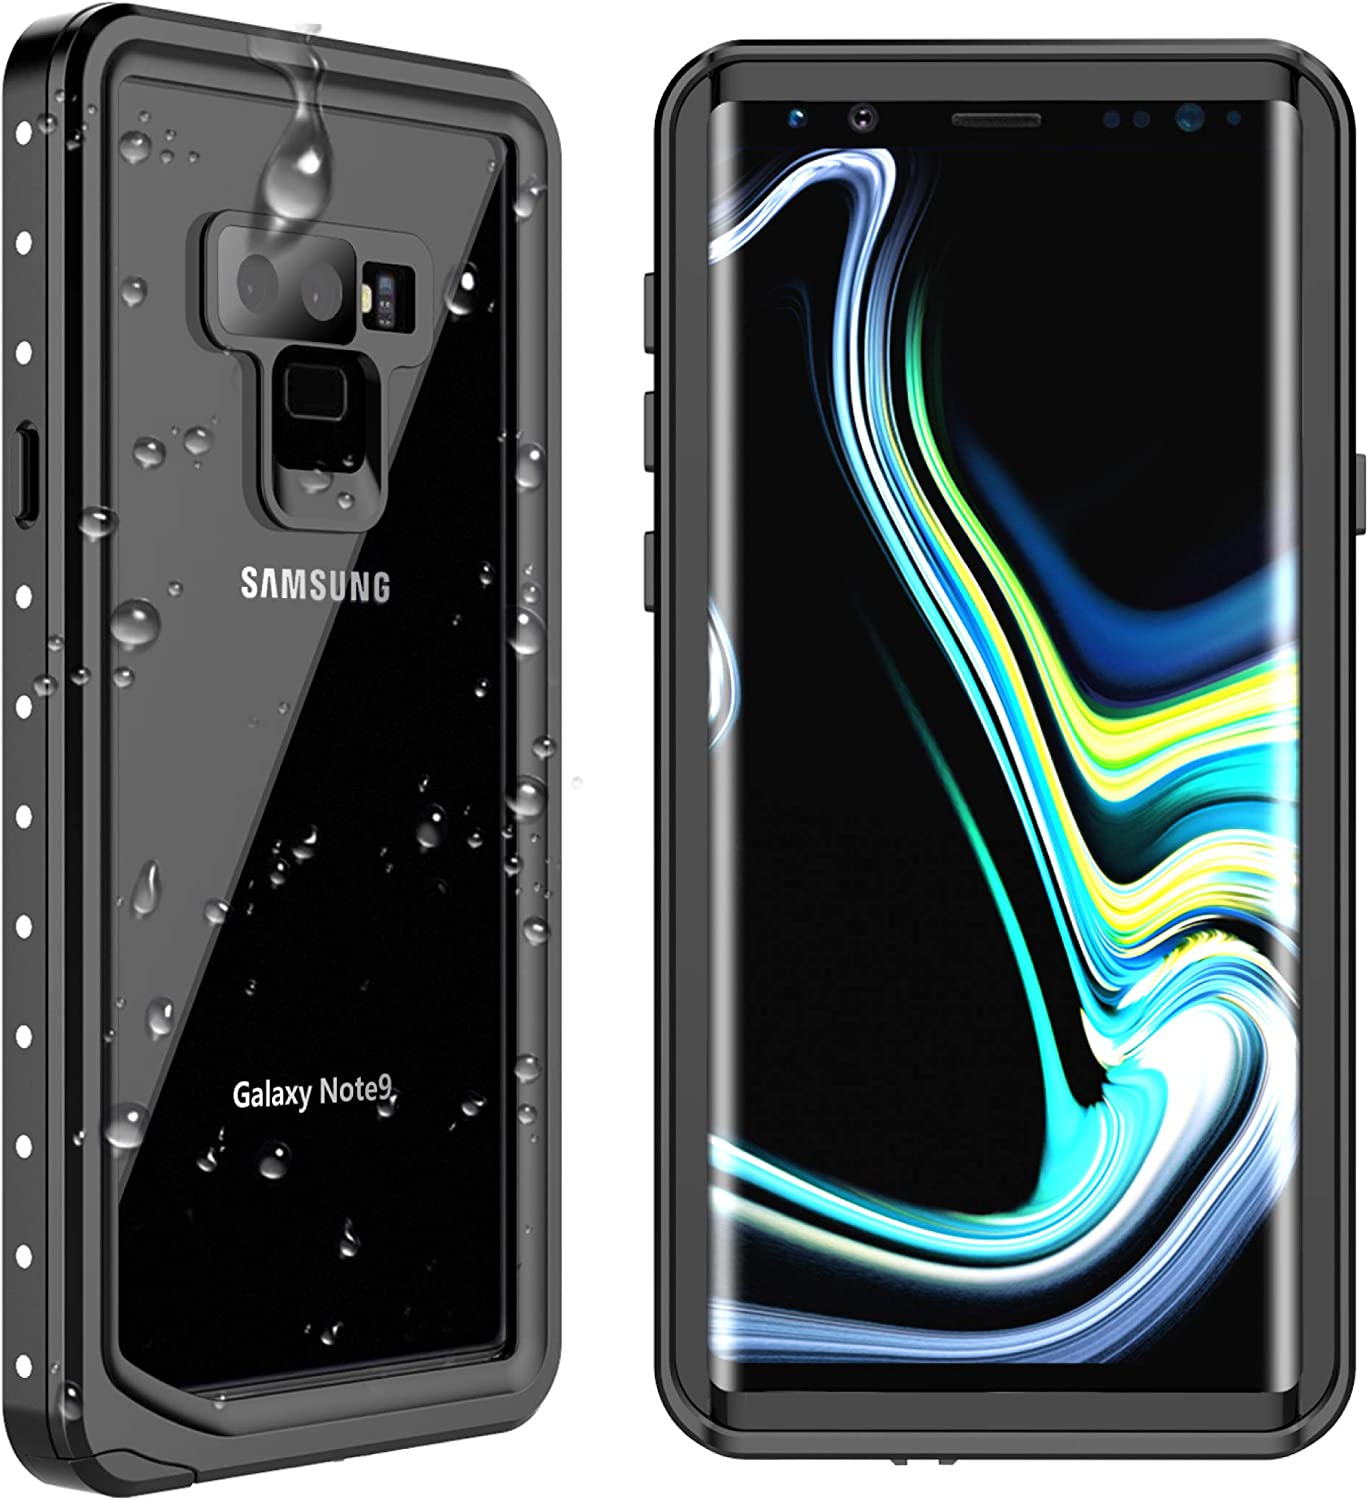 SPIDERCASE Samsung for Galaxy Note 9 Waterproof Case, Shockproof Snowproof Dirtproof, Waterproof Case for Samsung Galaxy Note 9 (Black/Transparent)